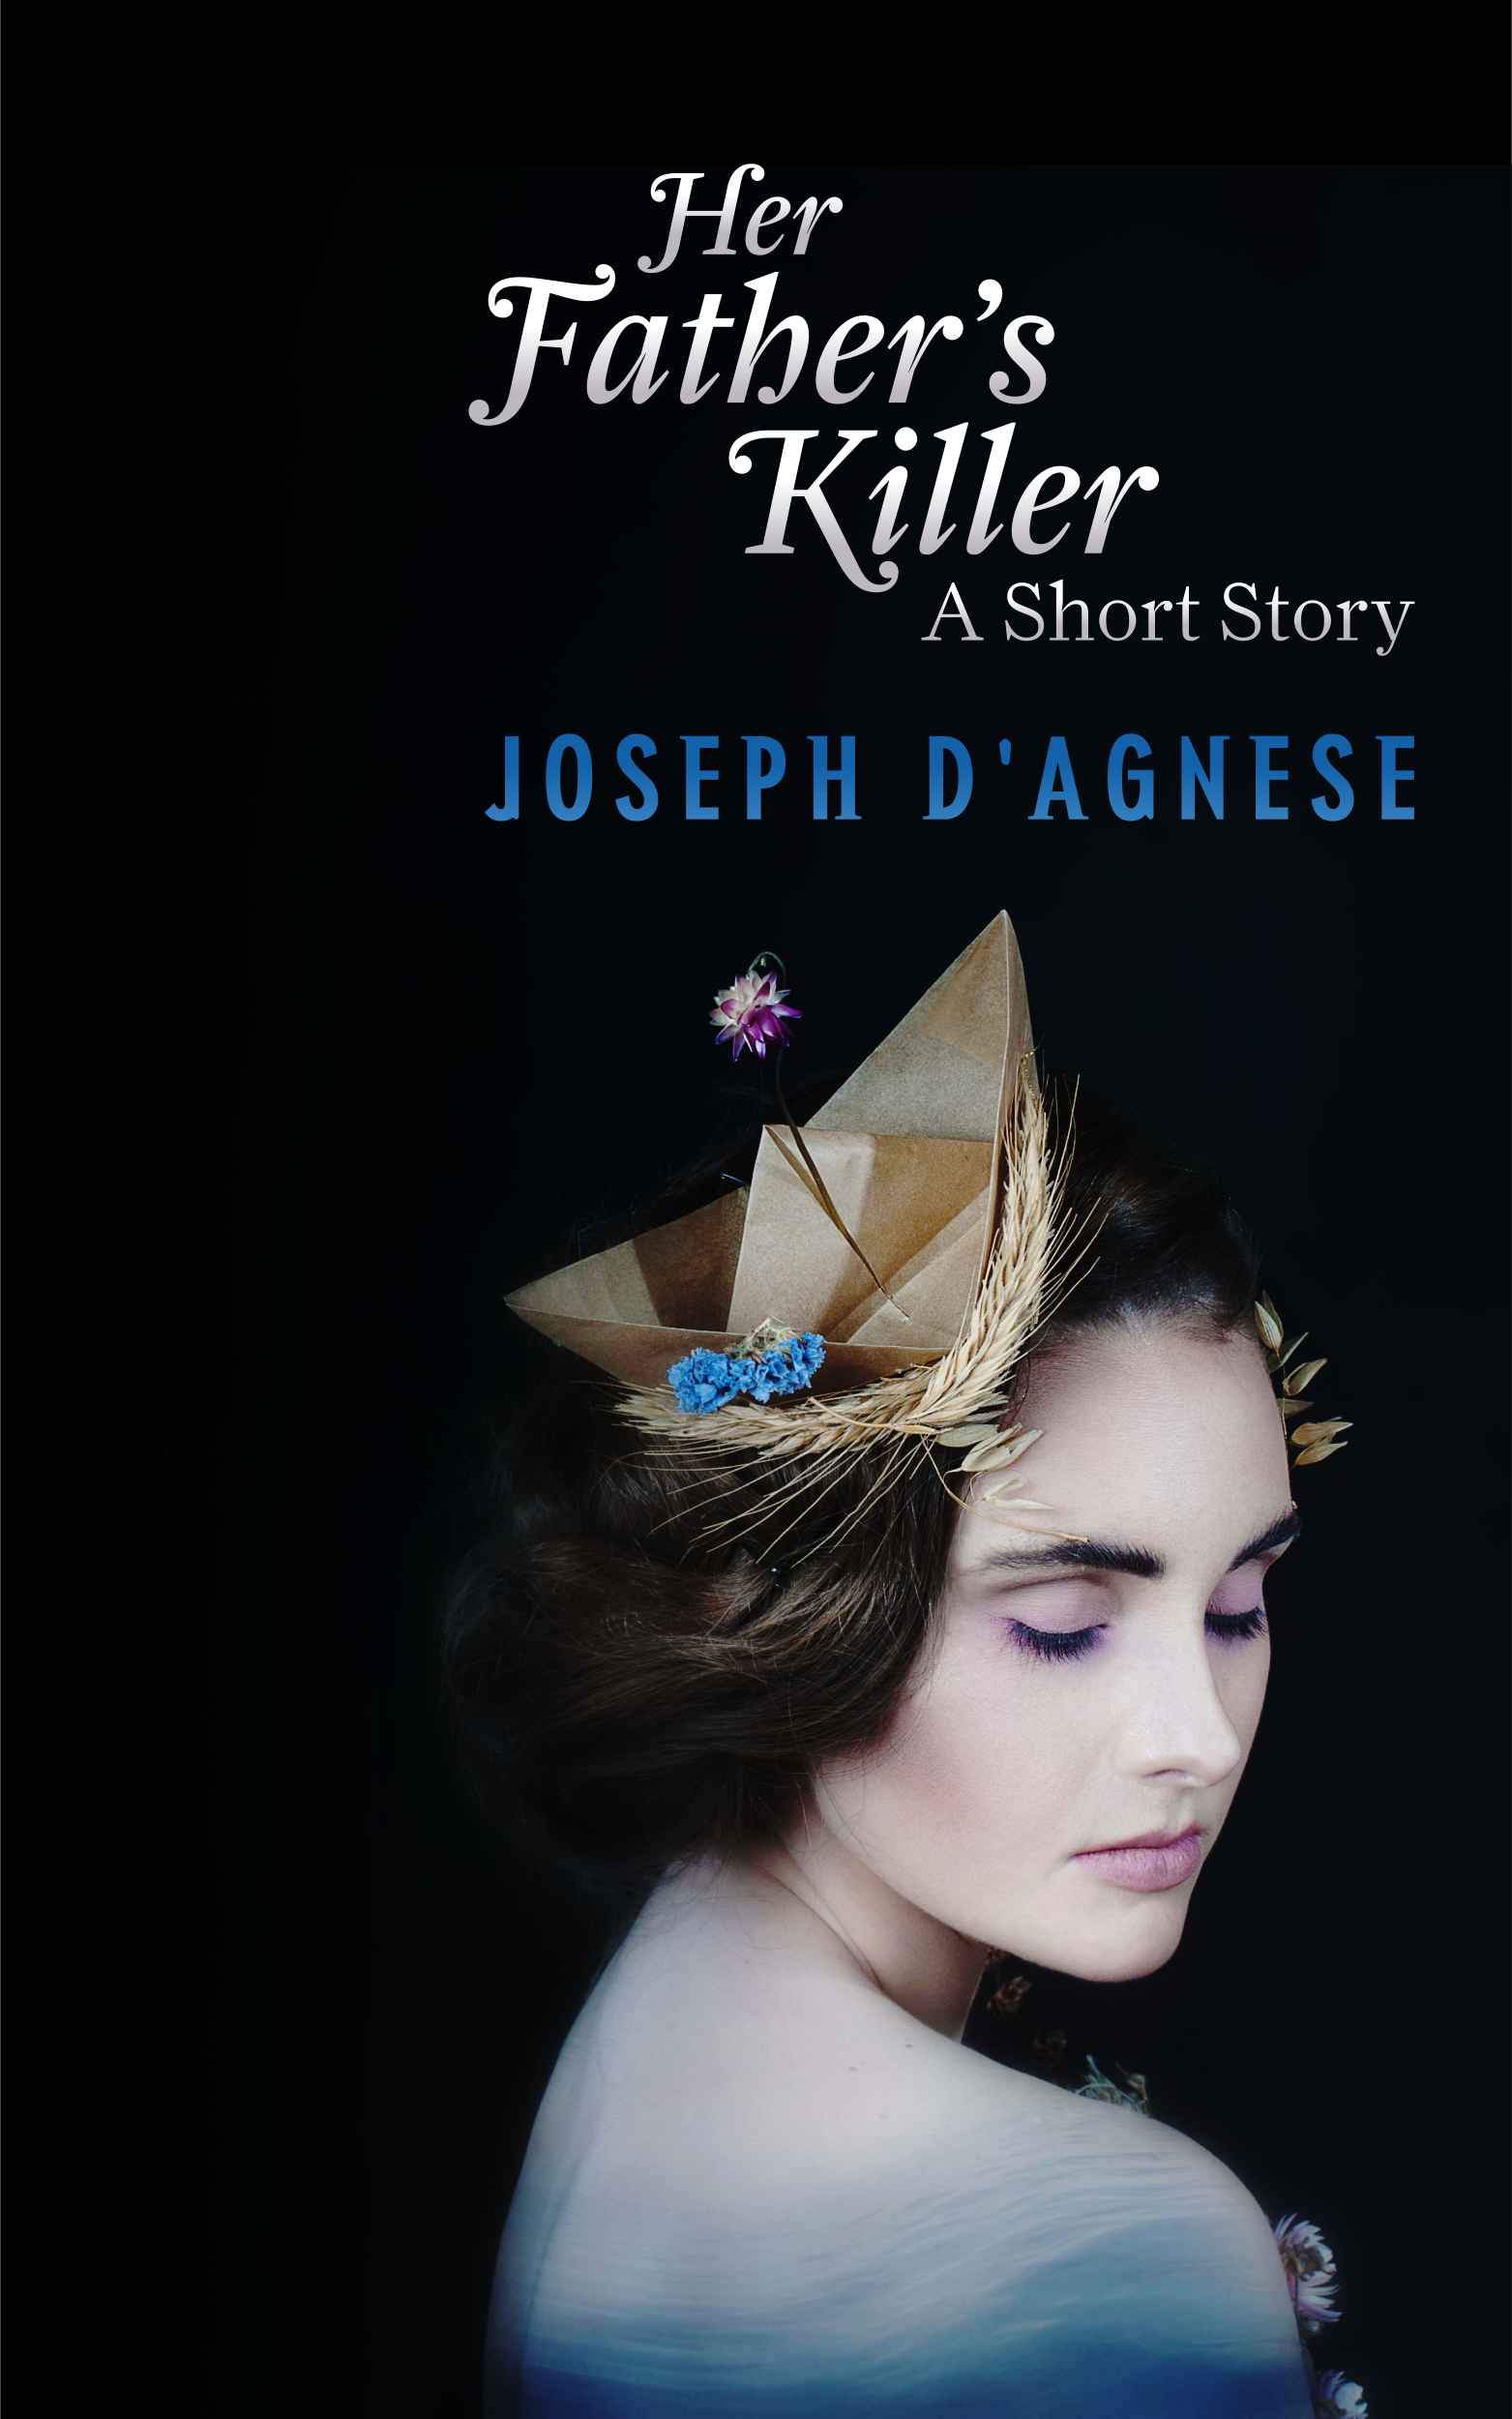 Her Father's Killer by Joseph D'Agnese